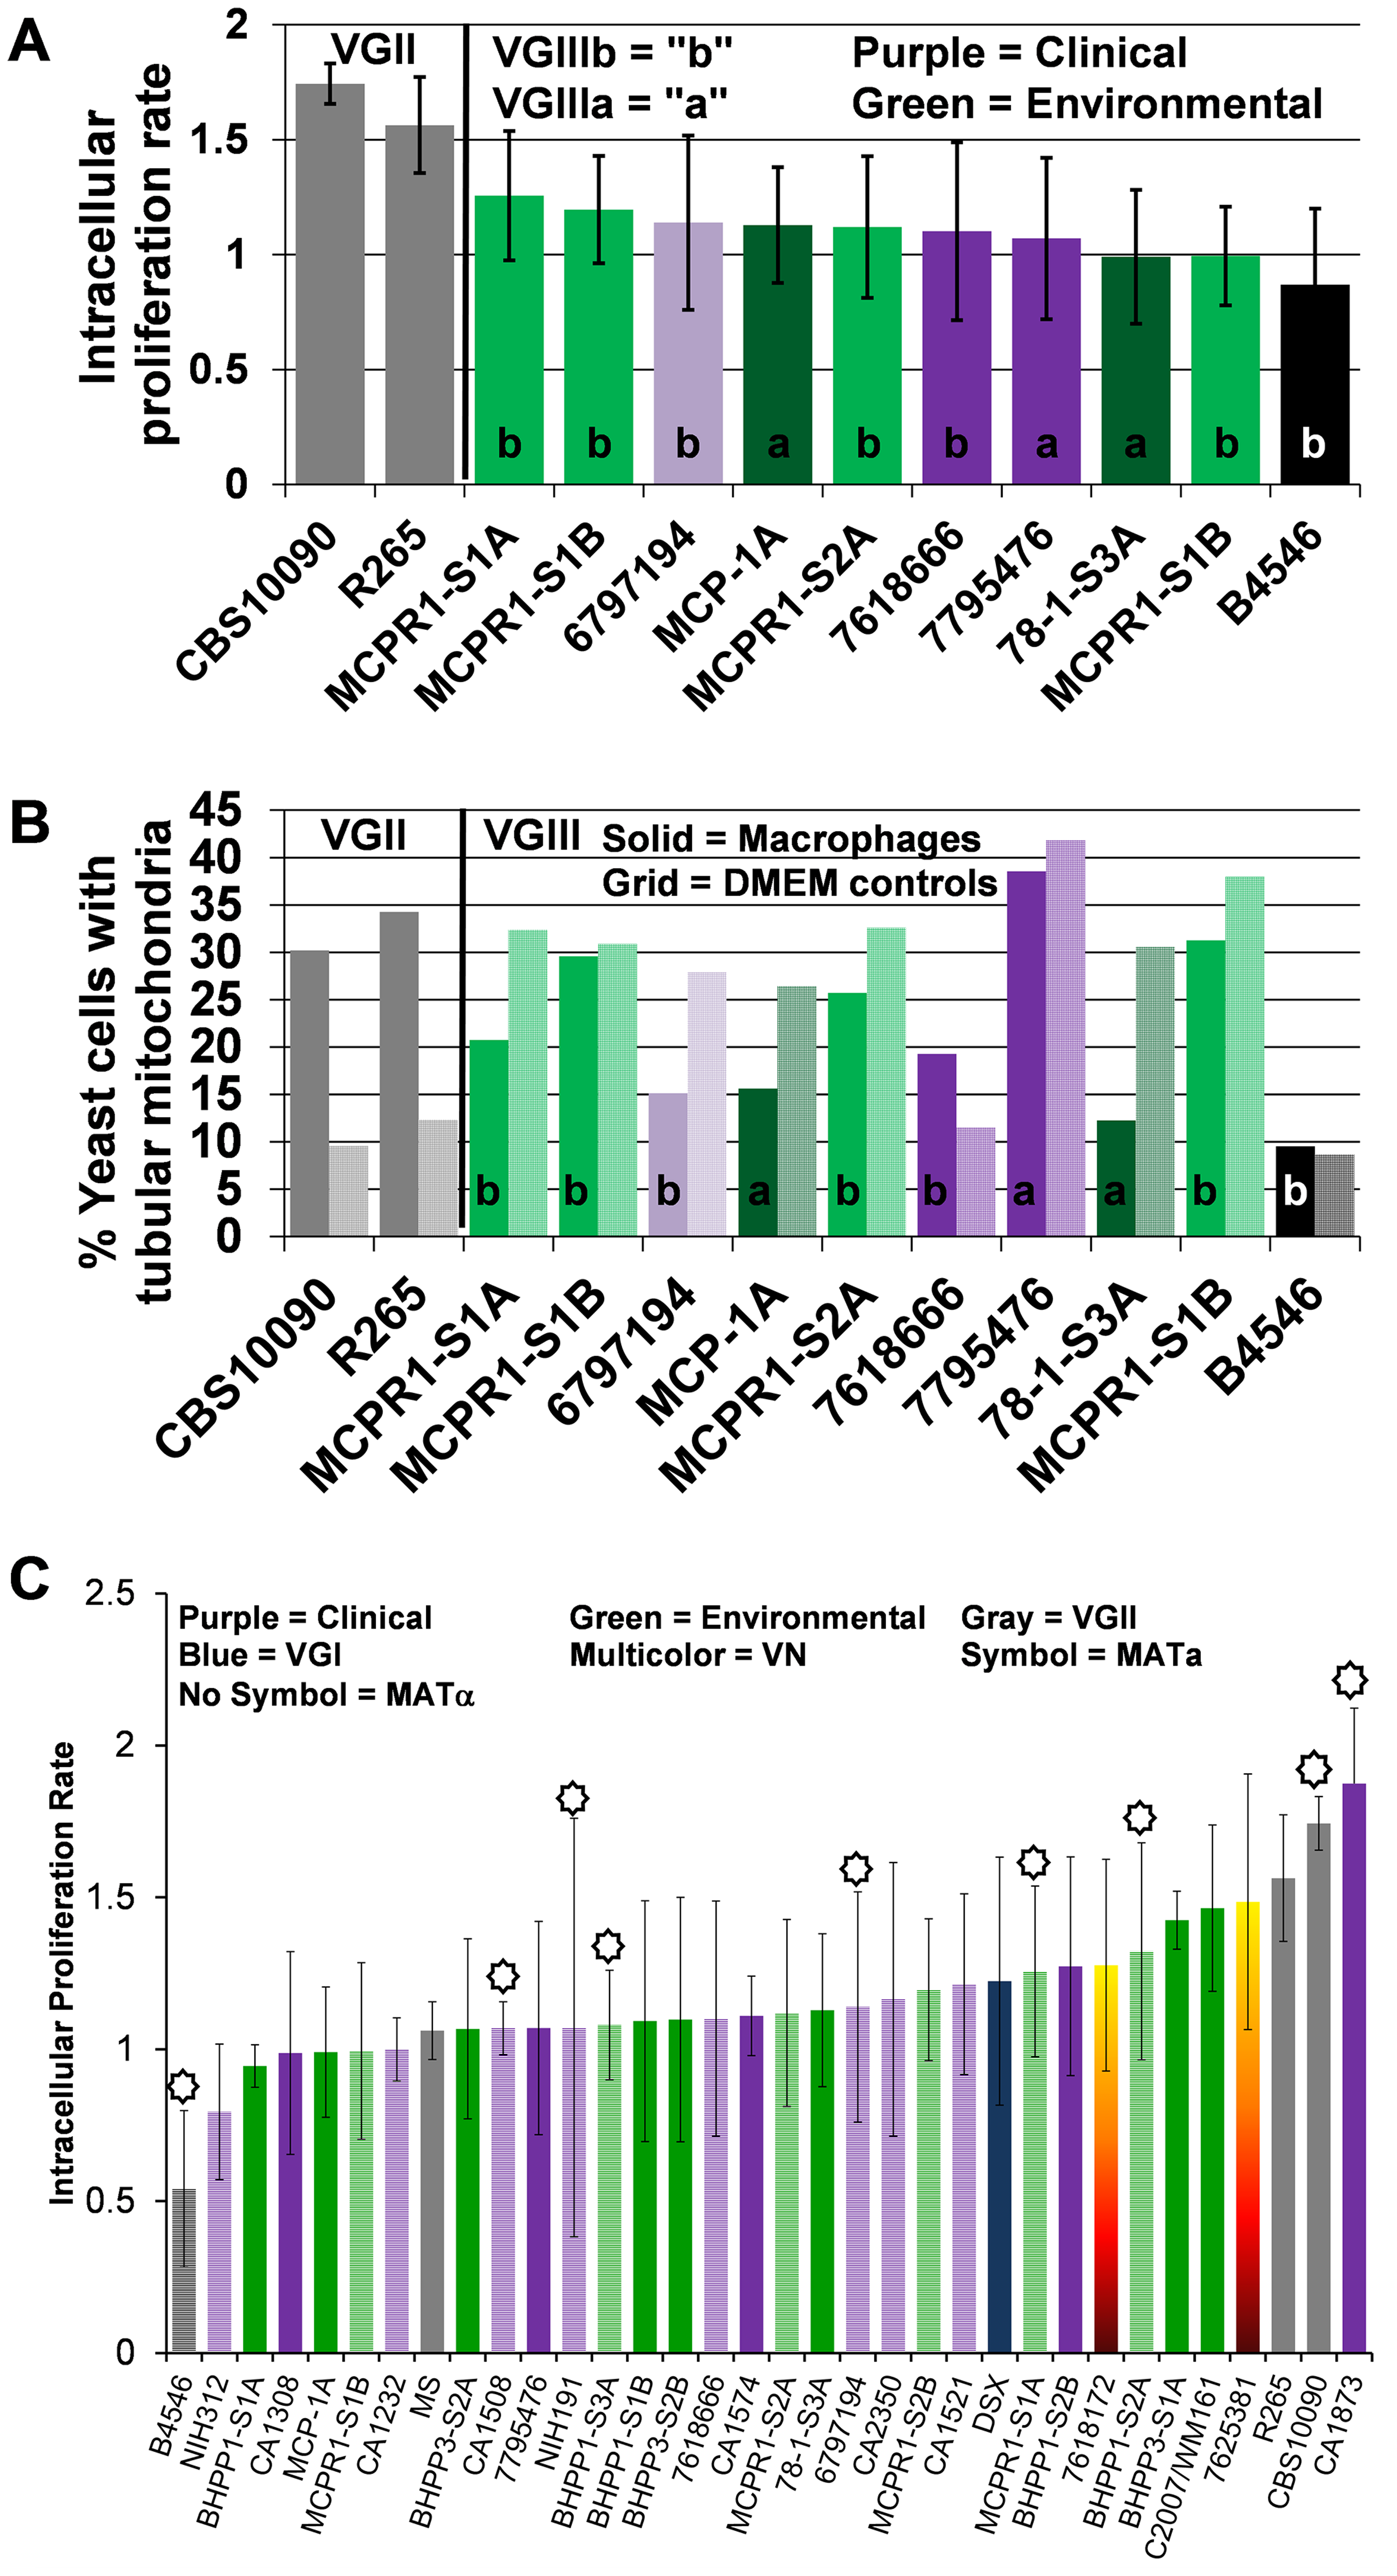 Intracellular proliferation rates (IPR) illustrate moderate proliferation levels and suggest mitochondrial tubularization is decoupled from IPR in macrophages for <i>C. gattii</i> VGIII isolates.